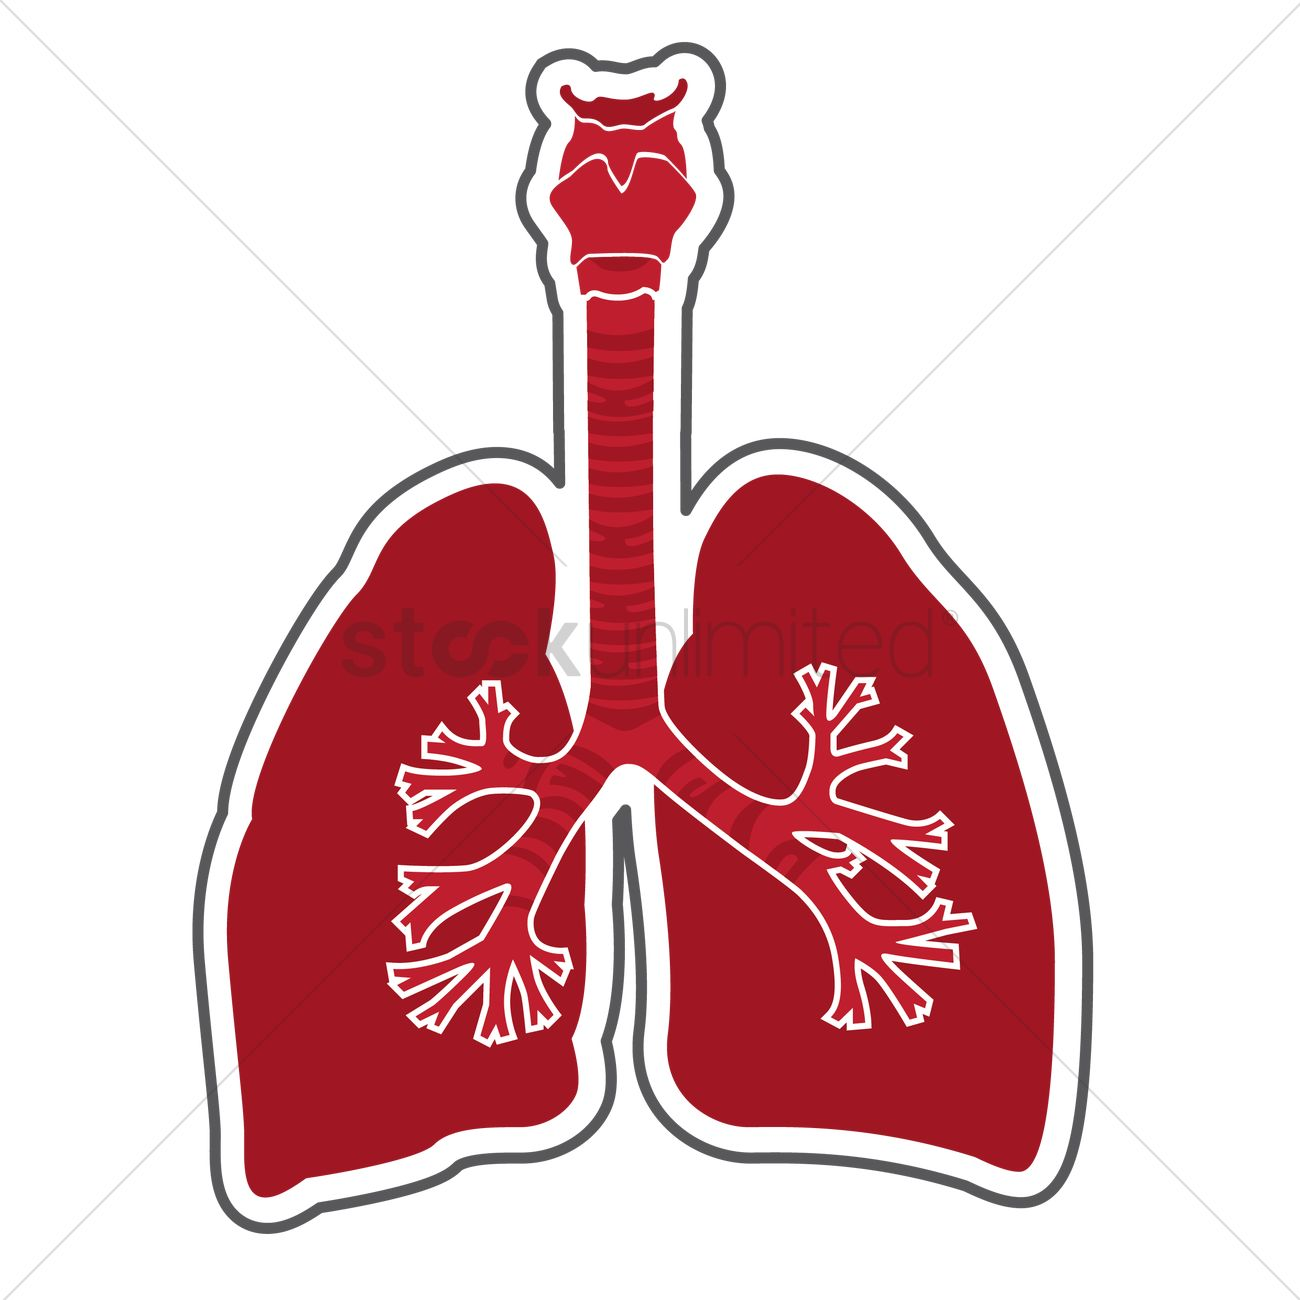 Human lungs Vector Image - 1979862 | StockUnlimited